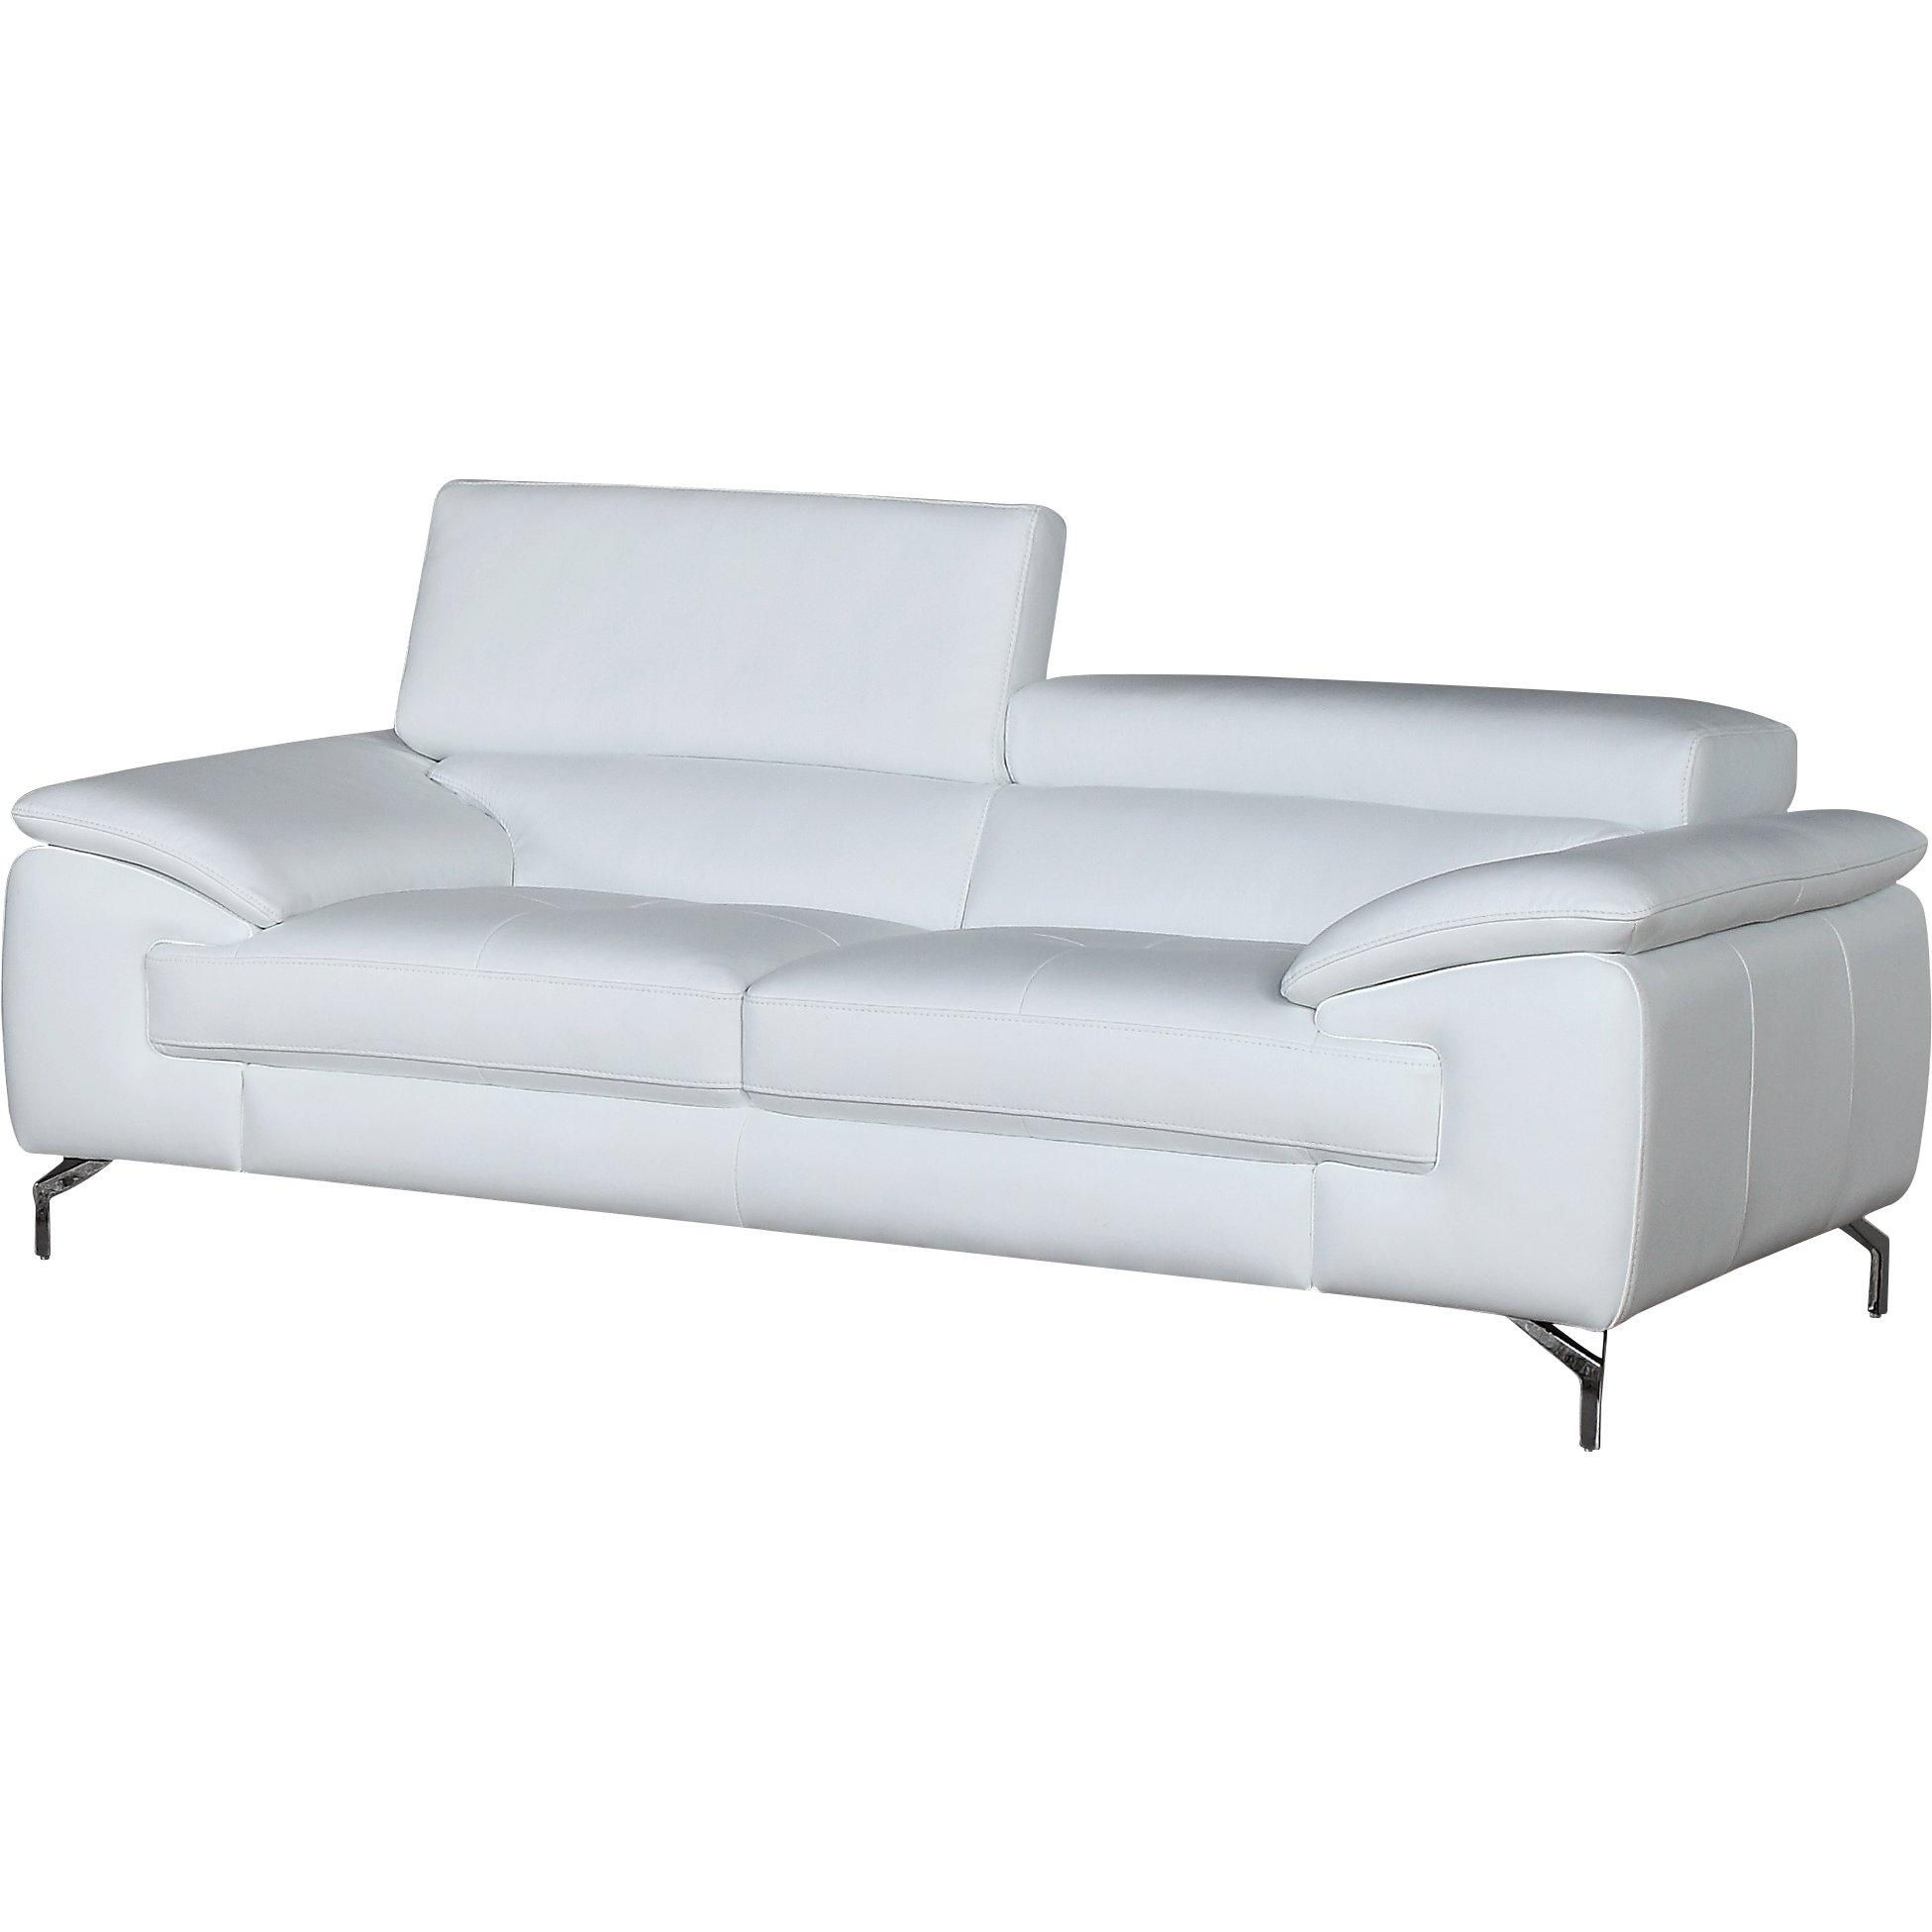 wayfair white leather sofa reclinable 3 cuerpos mexico 20 best collection of italian sofas ideas